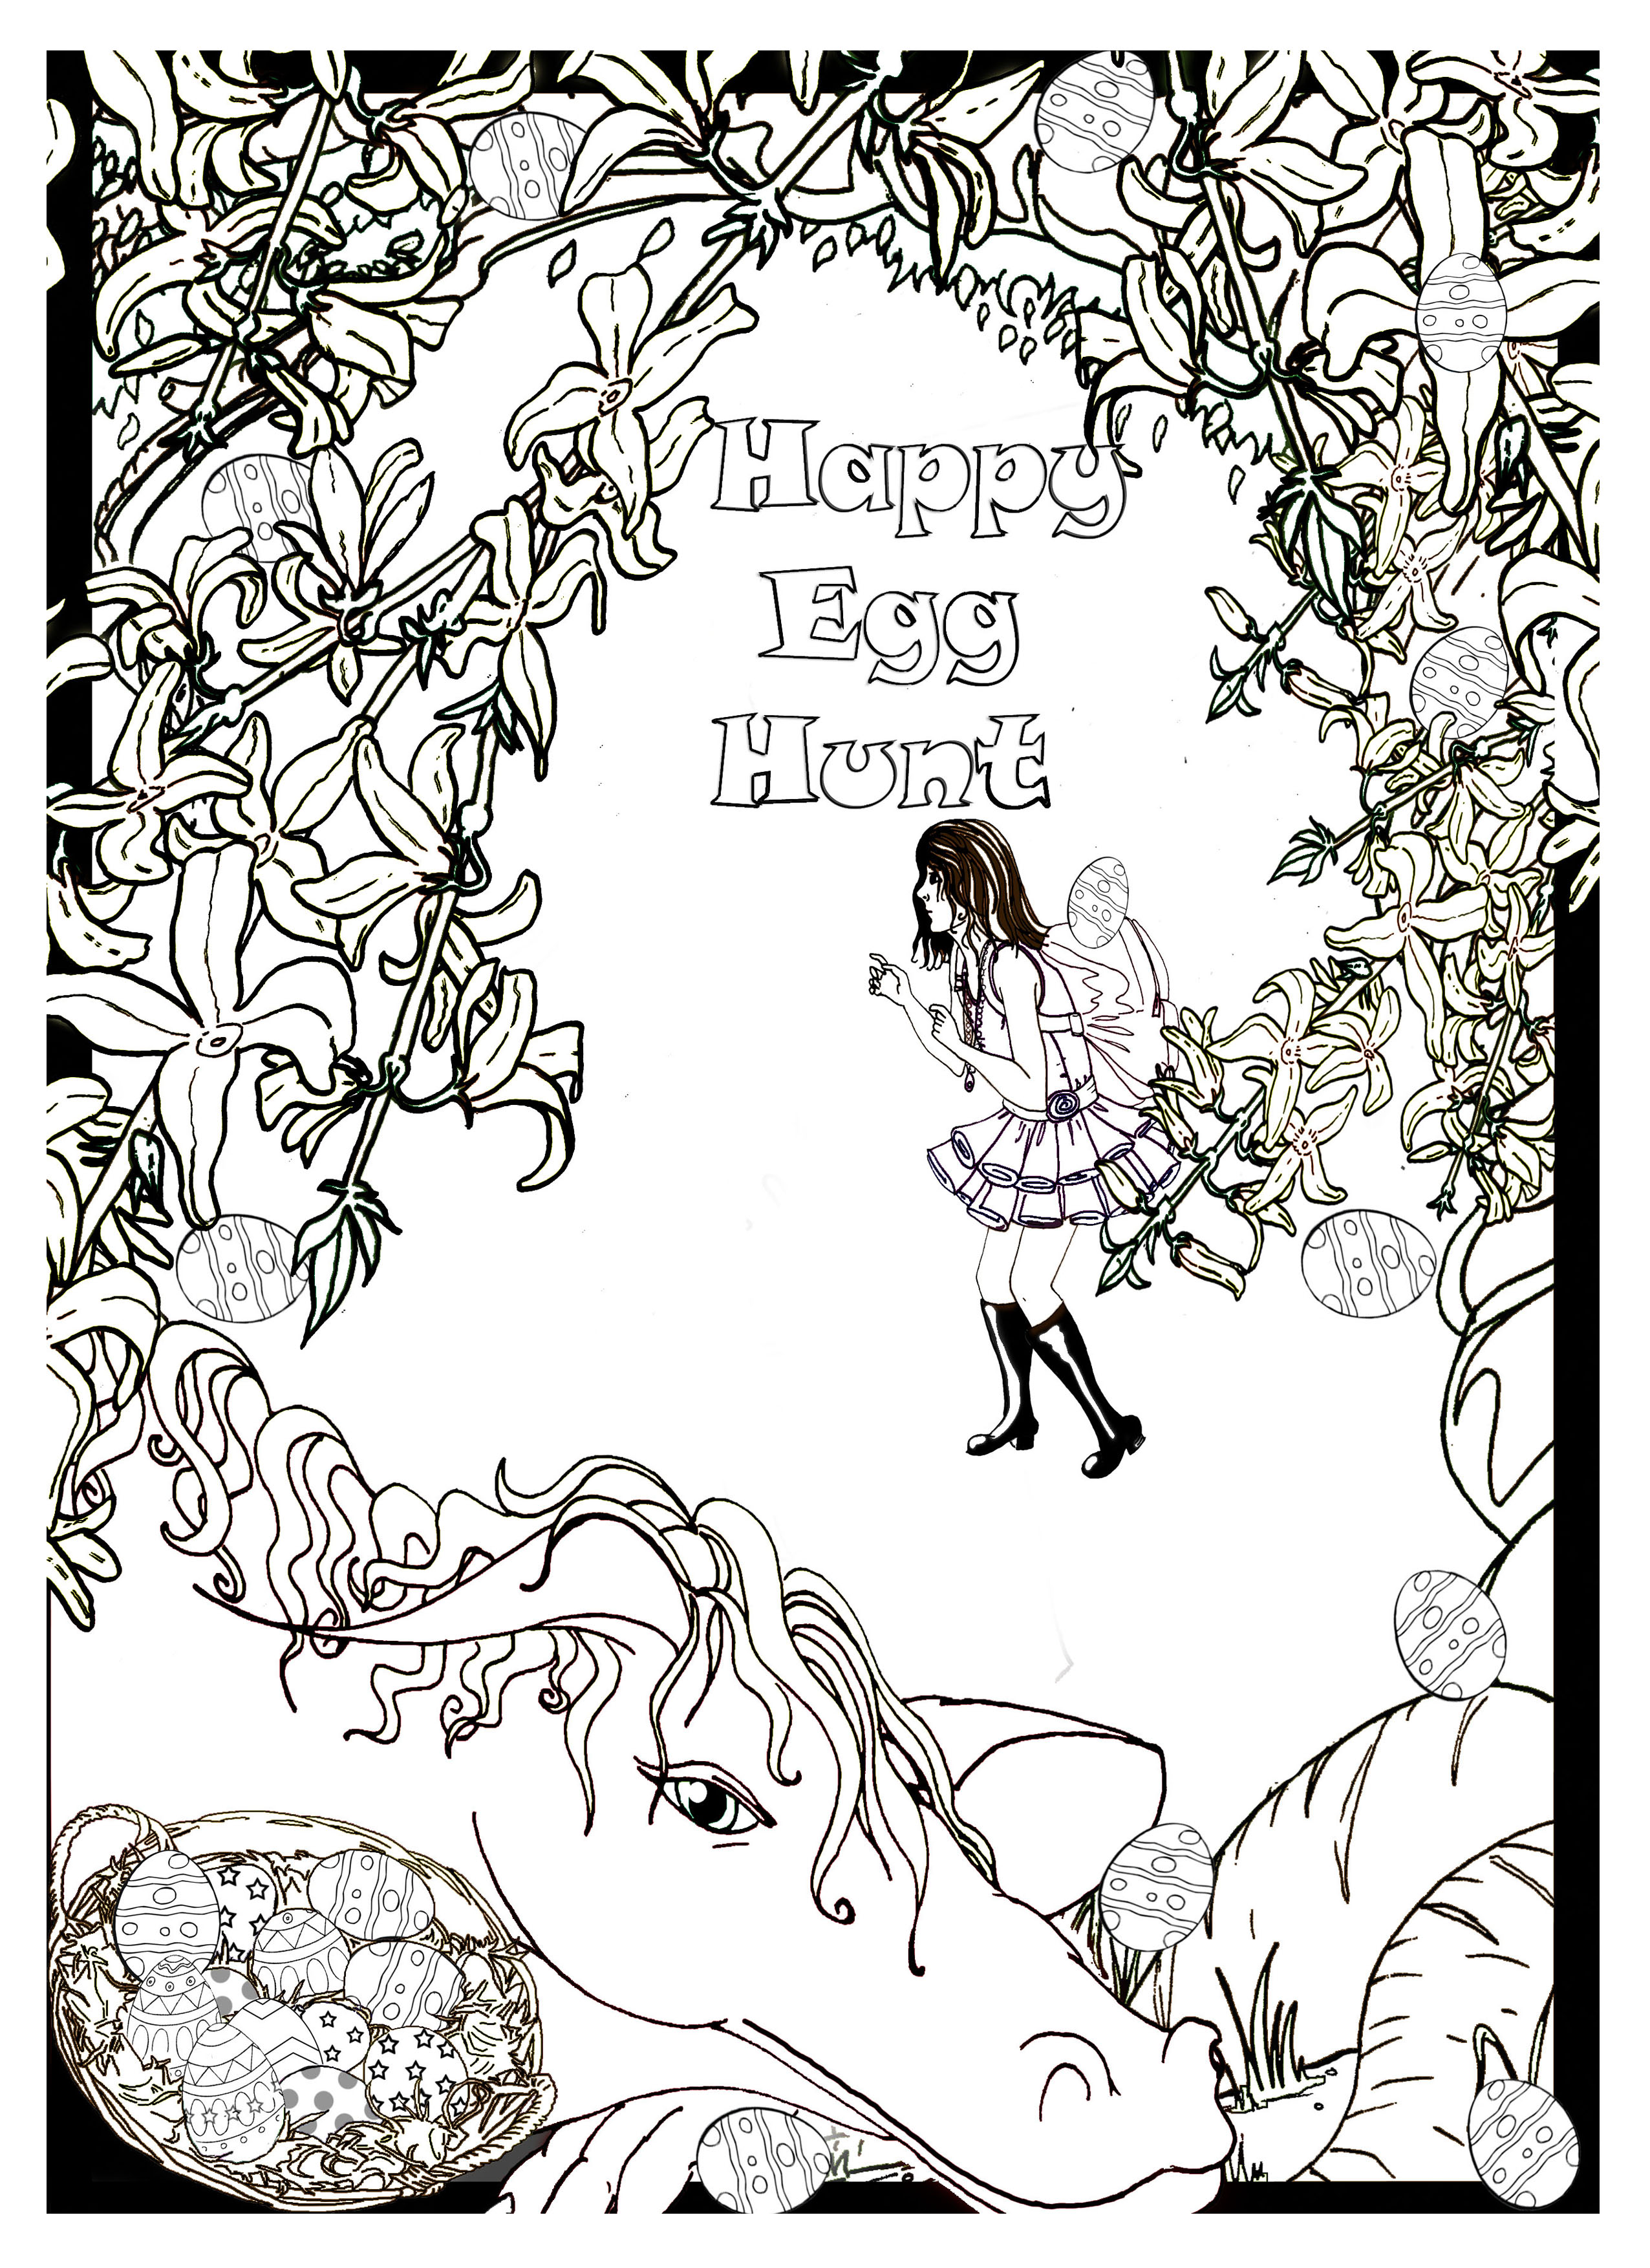 Go On An Egg Hunt With Princess Rain Counting Game And Coloring Page